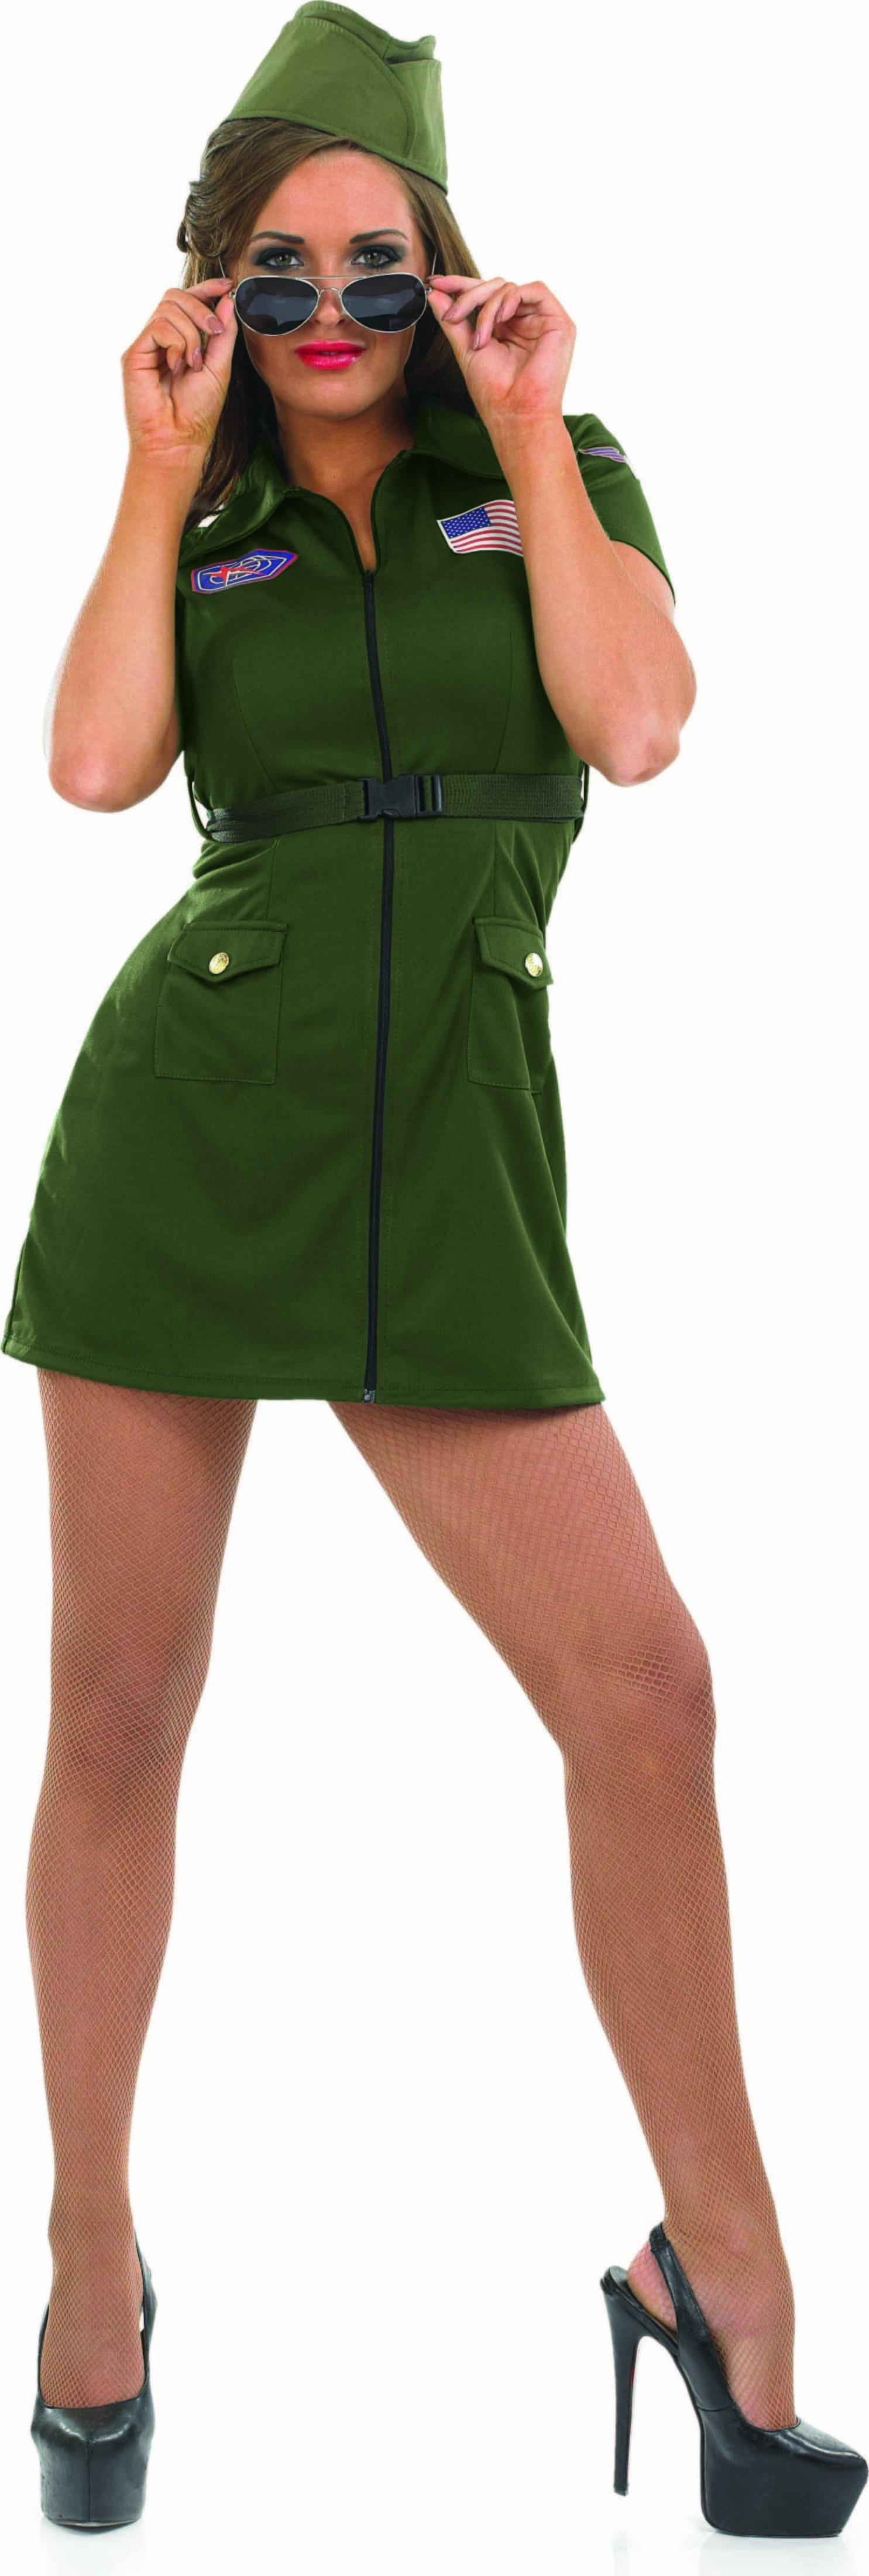 Ladies Aviator Girl Army Outfit - (Green)